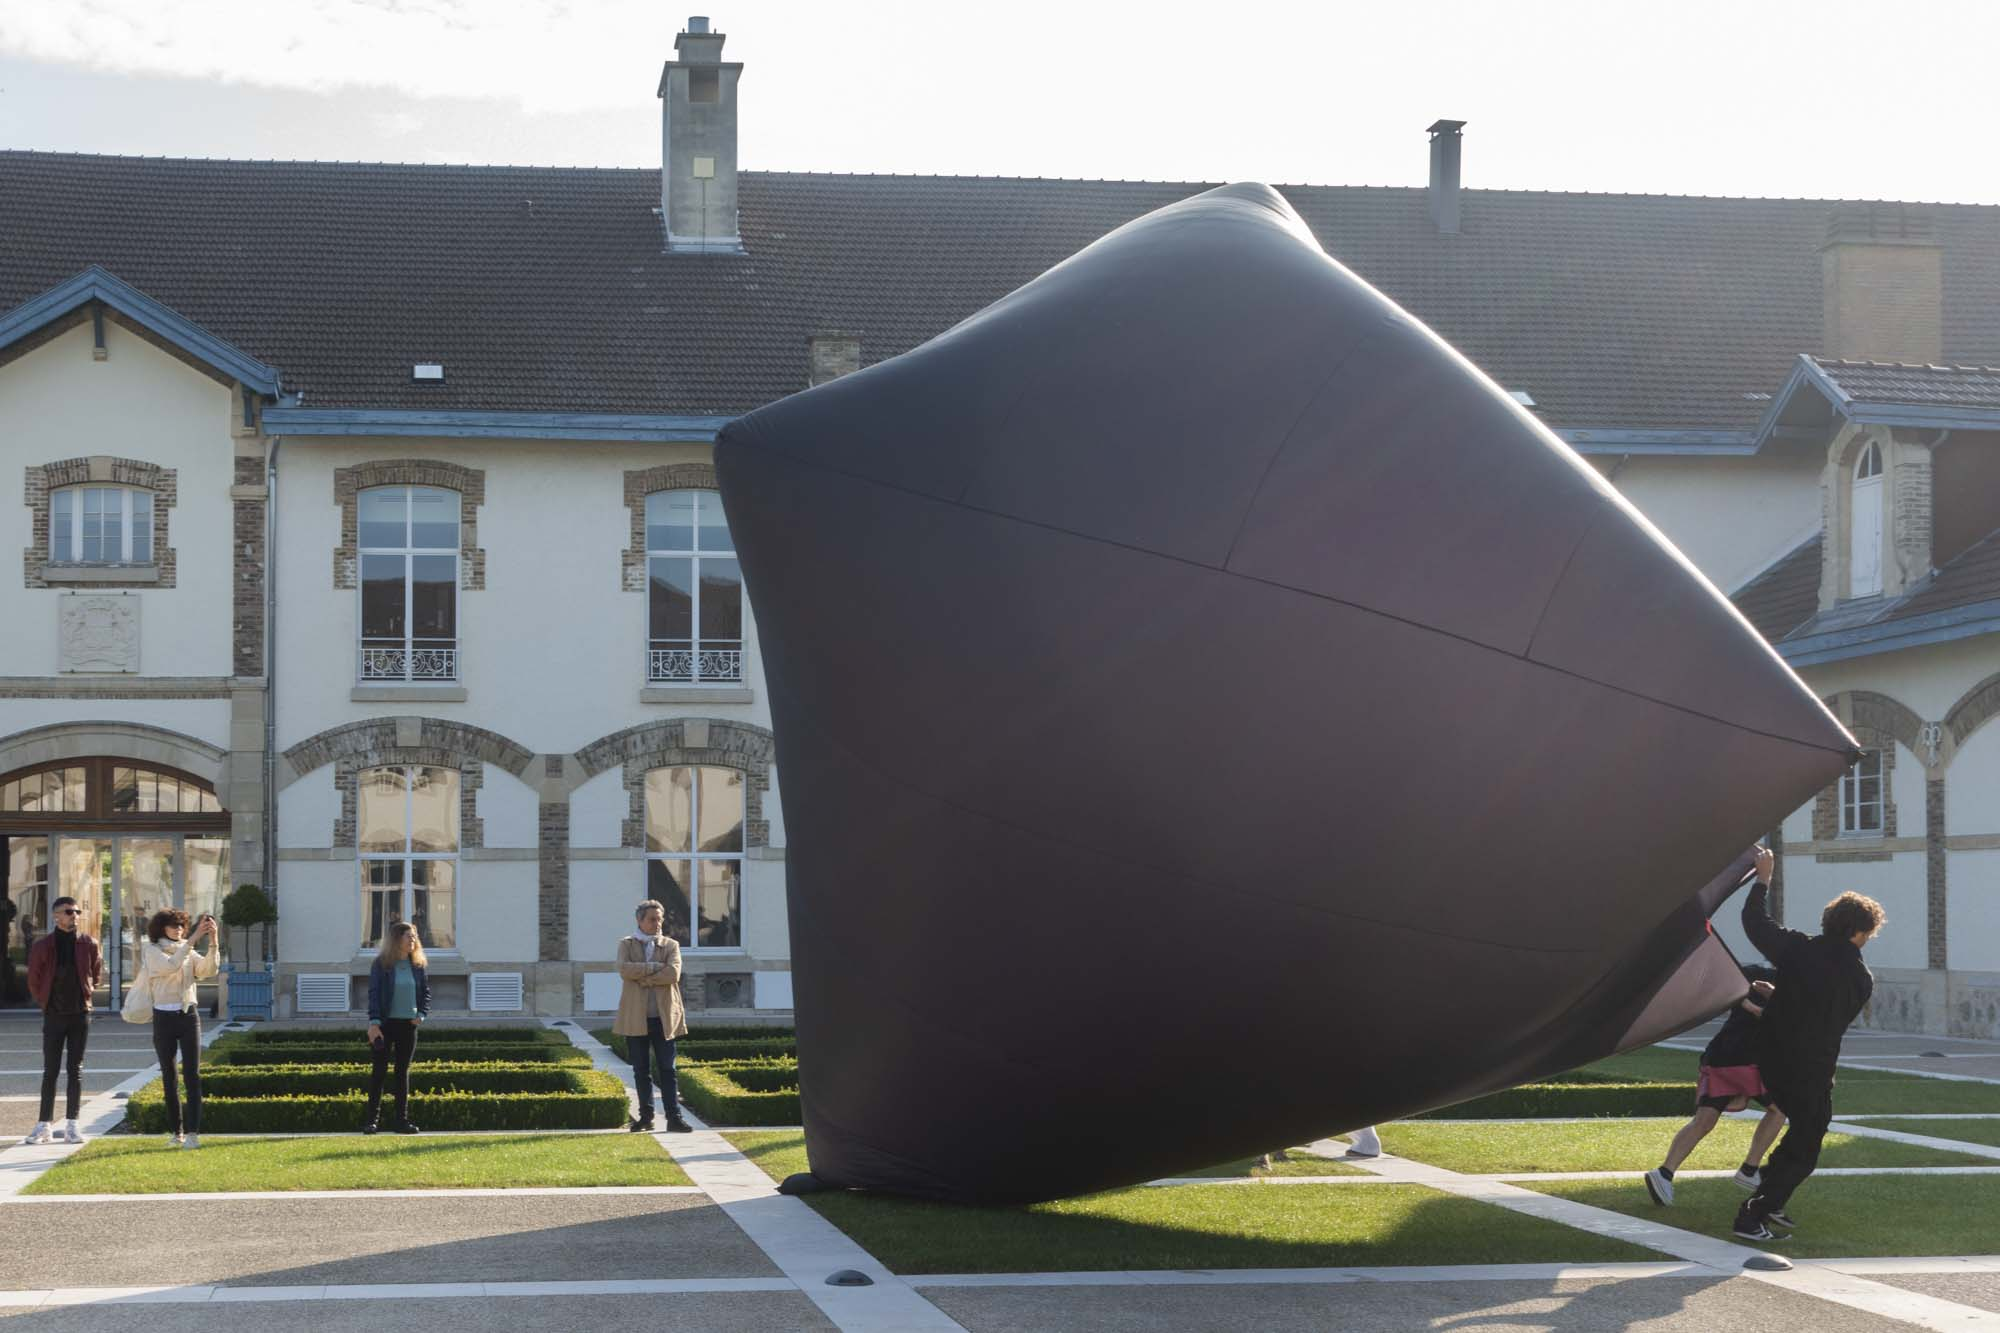 Tomás Saraceno's assistant and a journalist filling the black Aerocene sculpture with air outside of Maison Ruinart in Reims